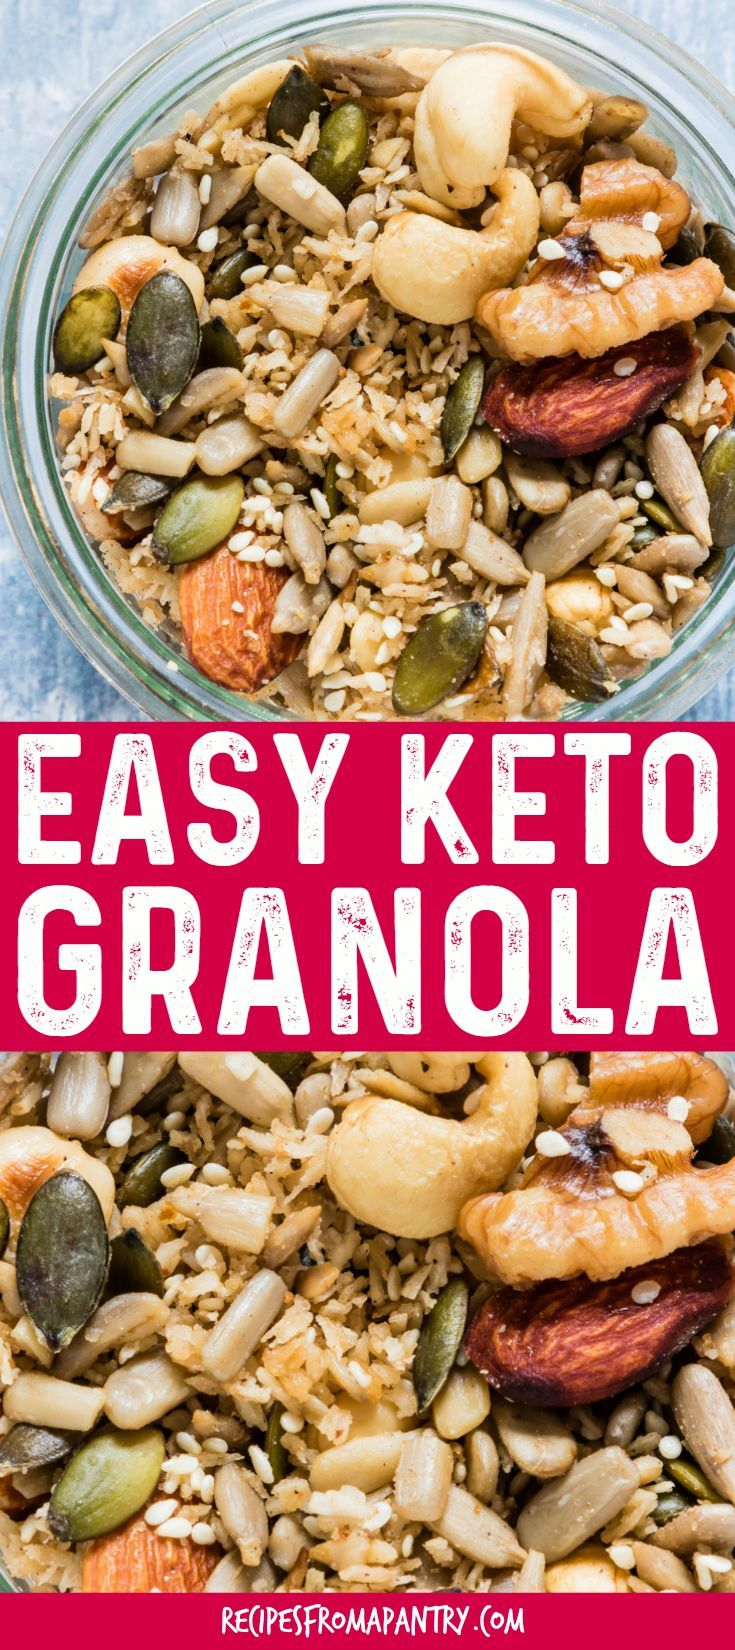 Delicious Slow Cooker Keto Granola Made With Mixed Nuts Seeds Coconut Cardamom And Nutmeg It Is Gluten Free And Refin Keto Granola Low Carb Granola Recipes